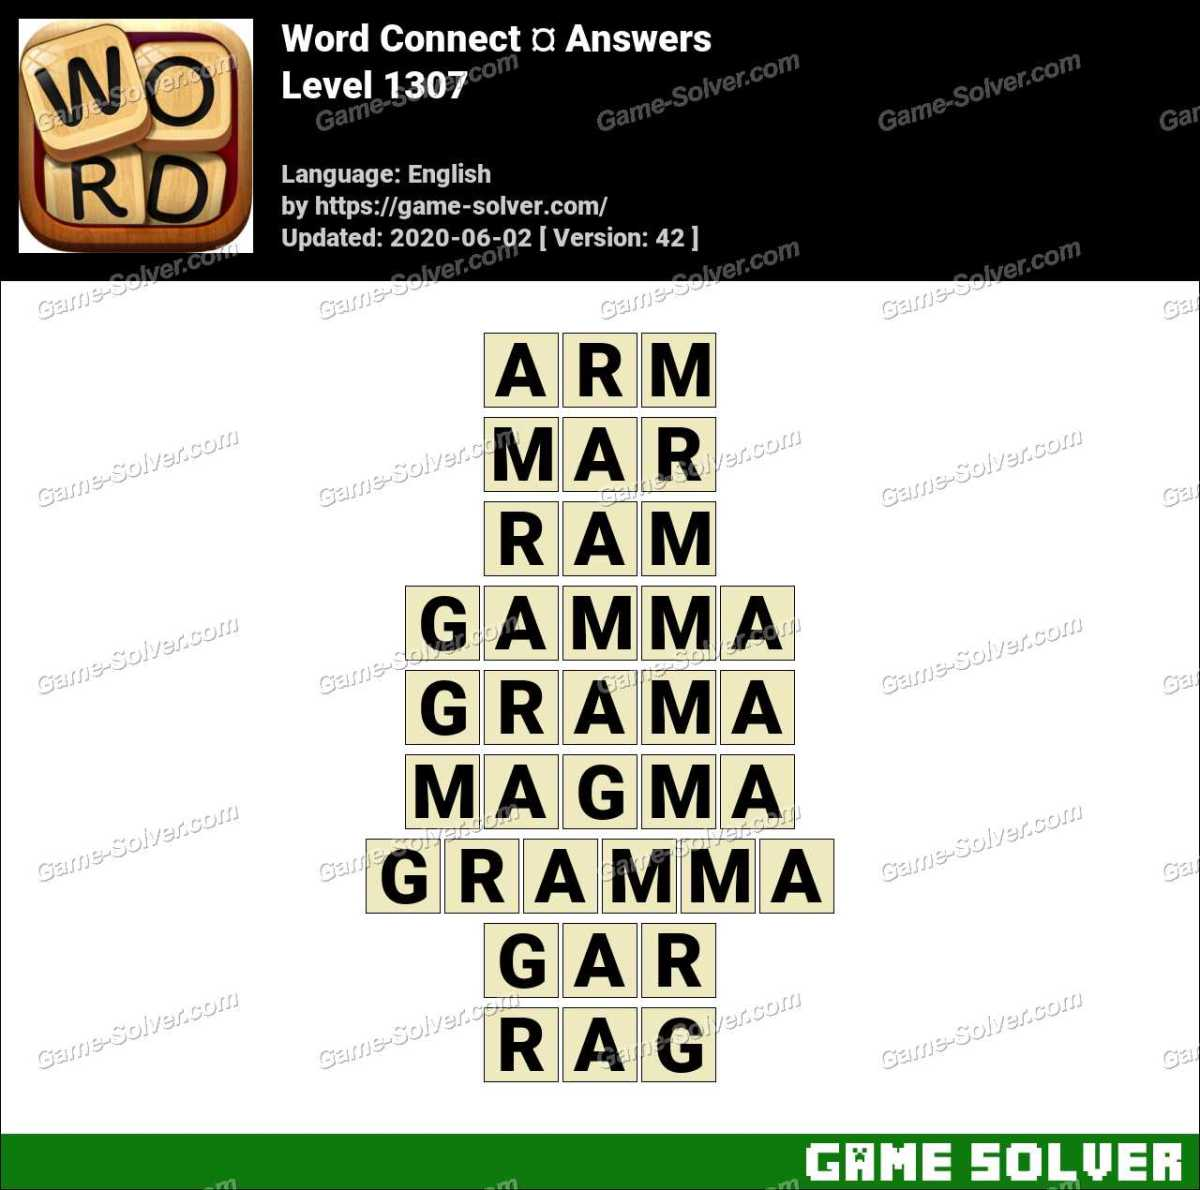 Word Connect Level 1307 Answers